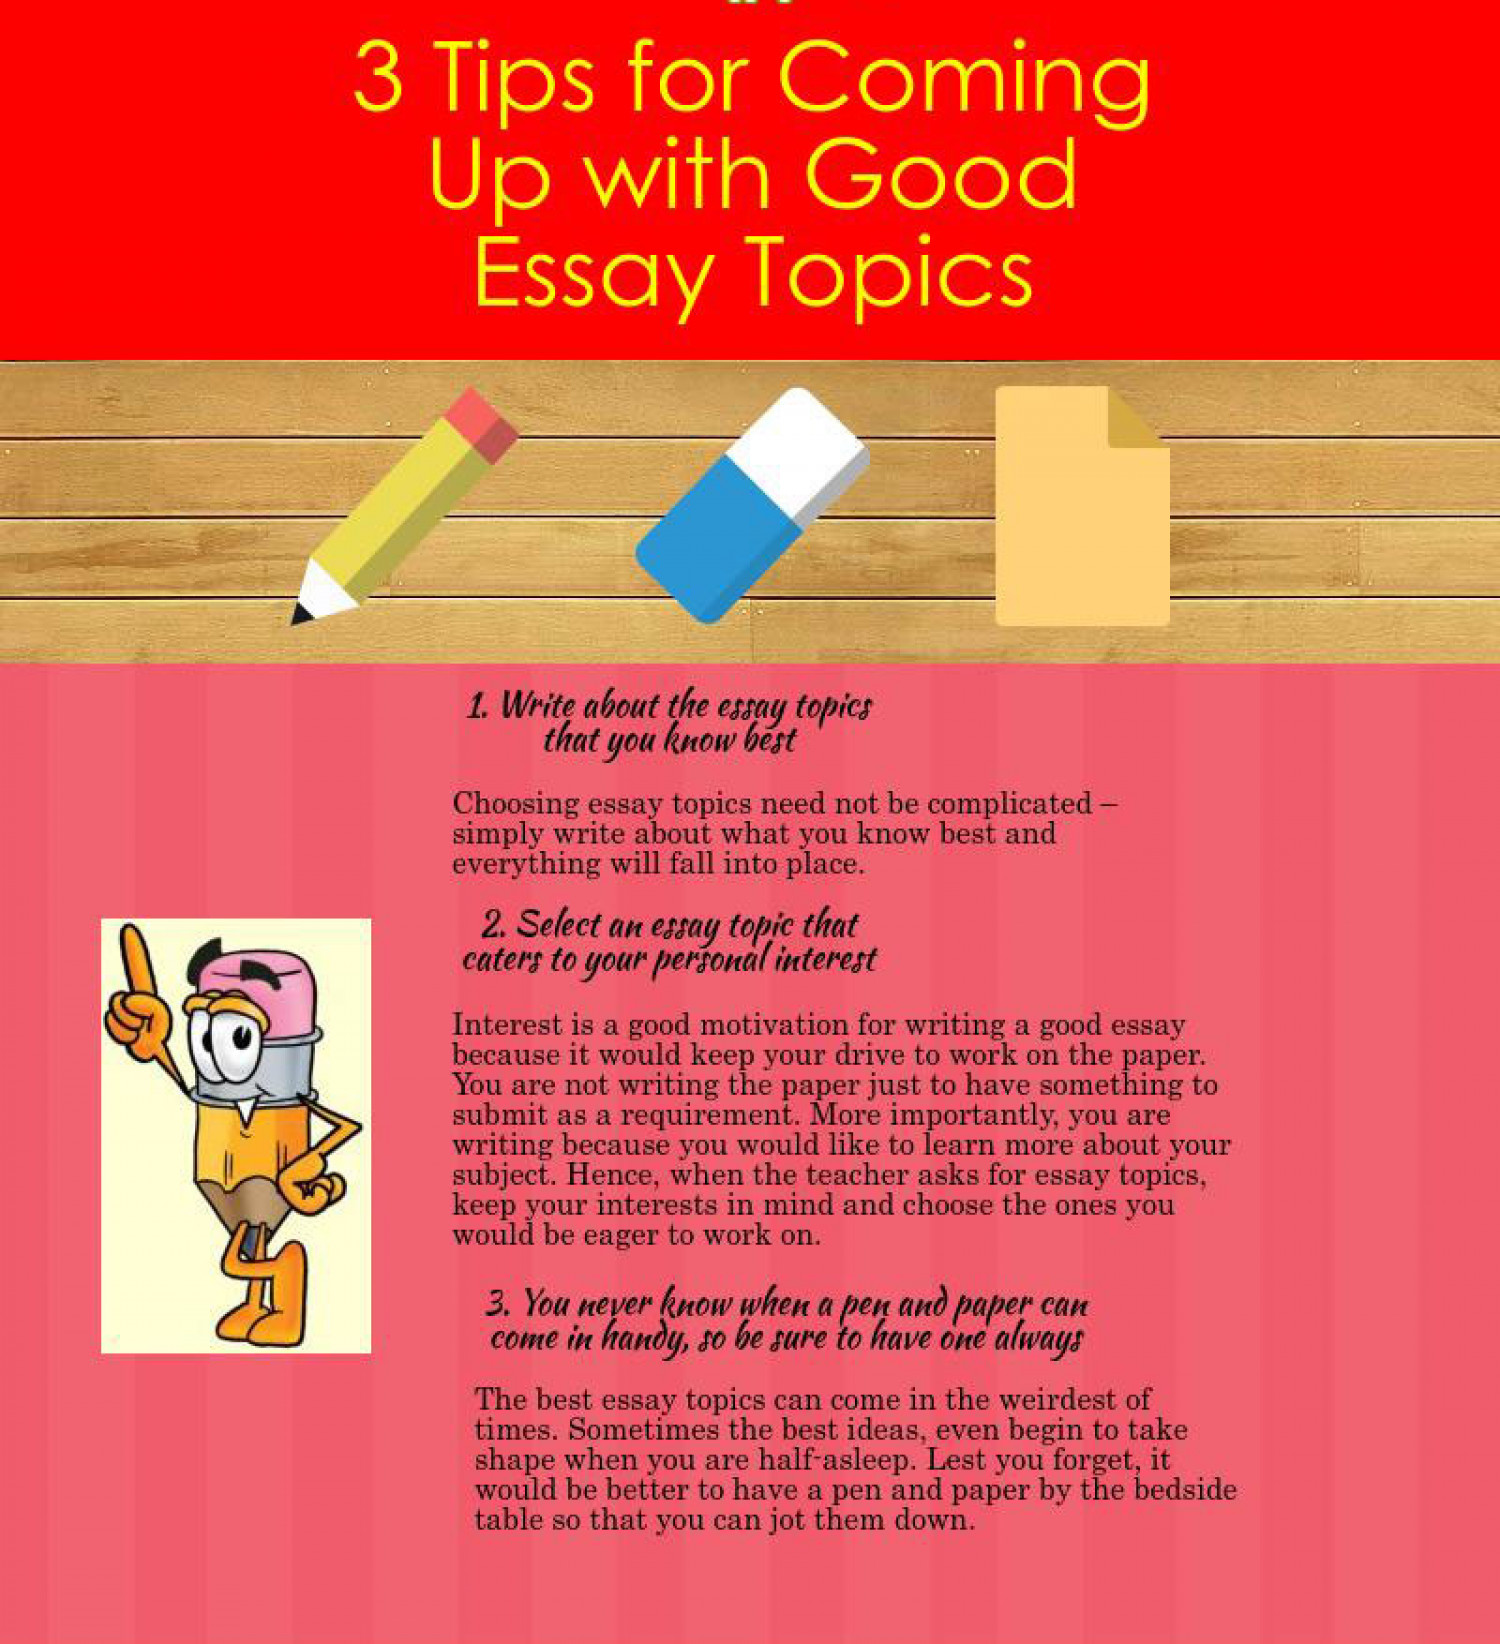 How to Pick a Good College Essay Topic